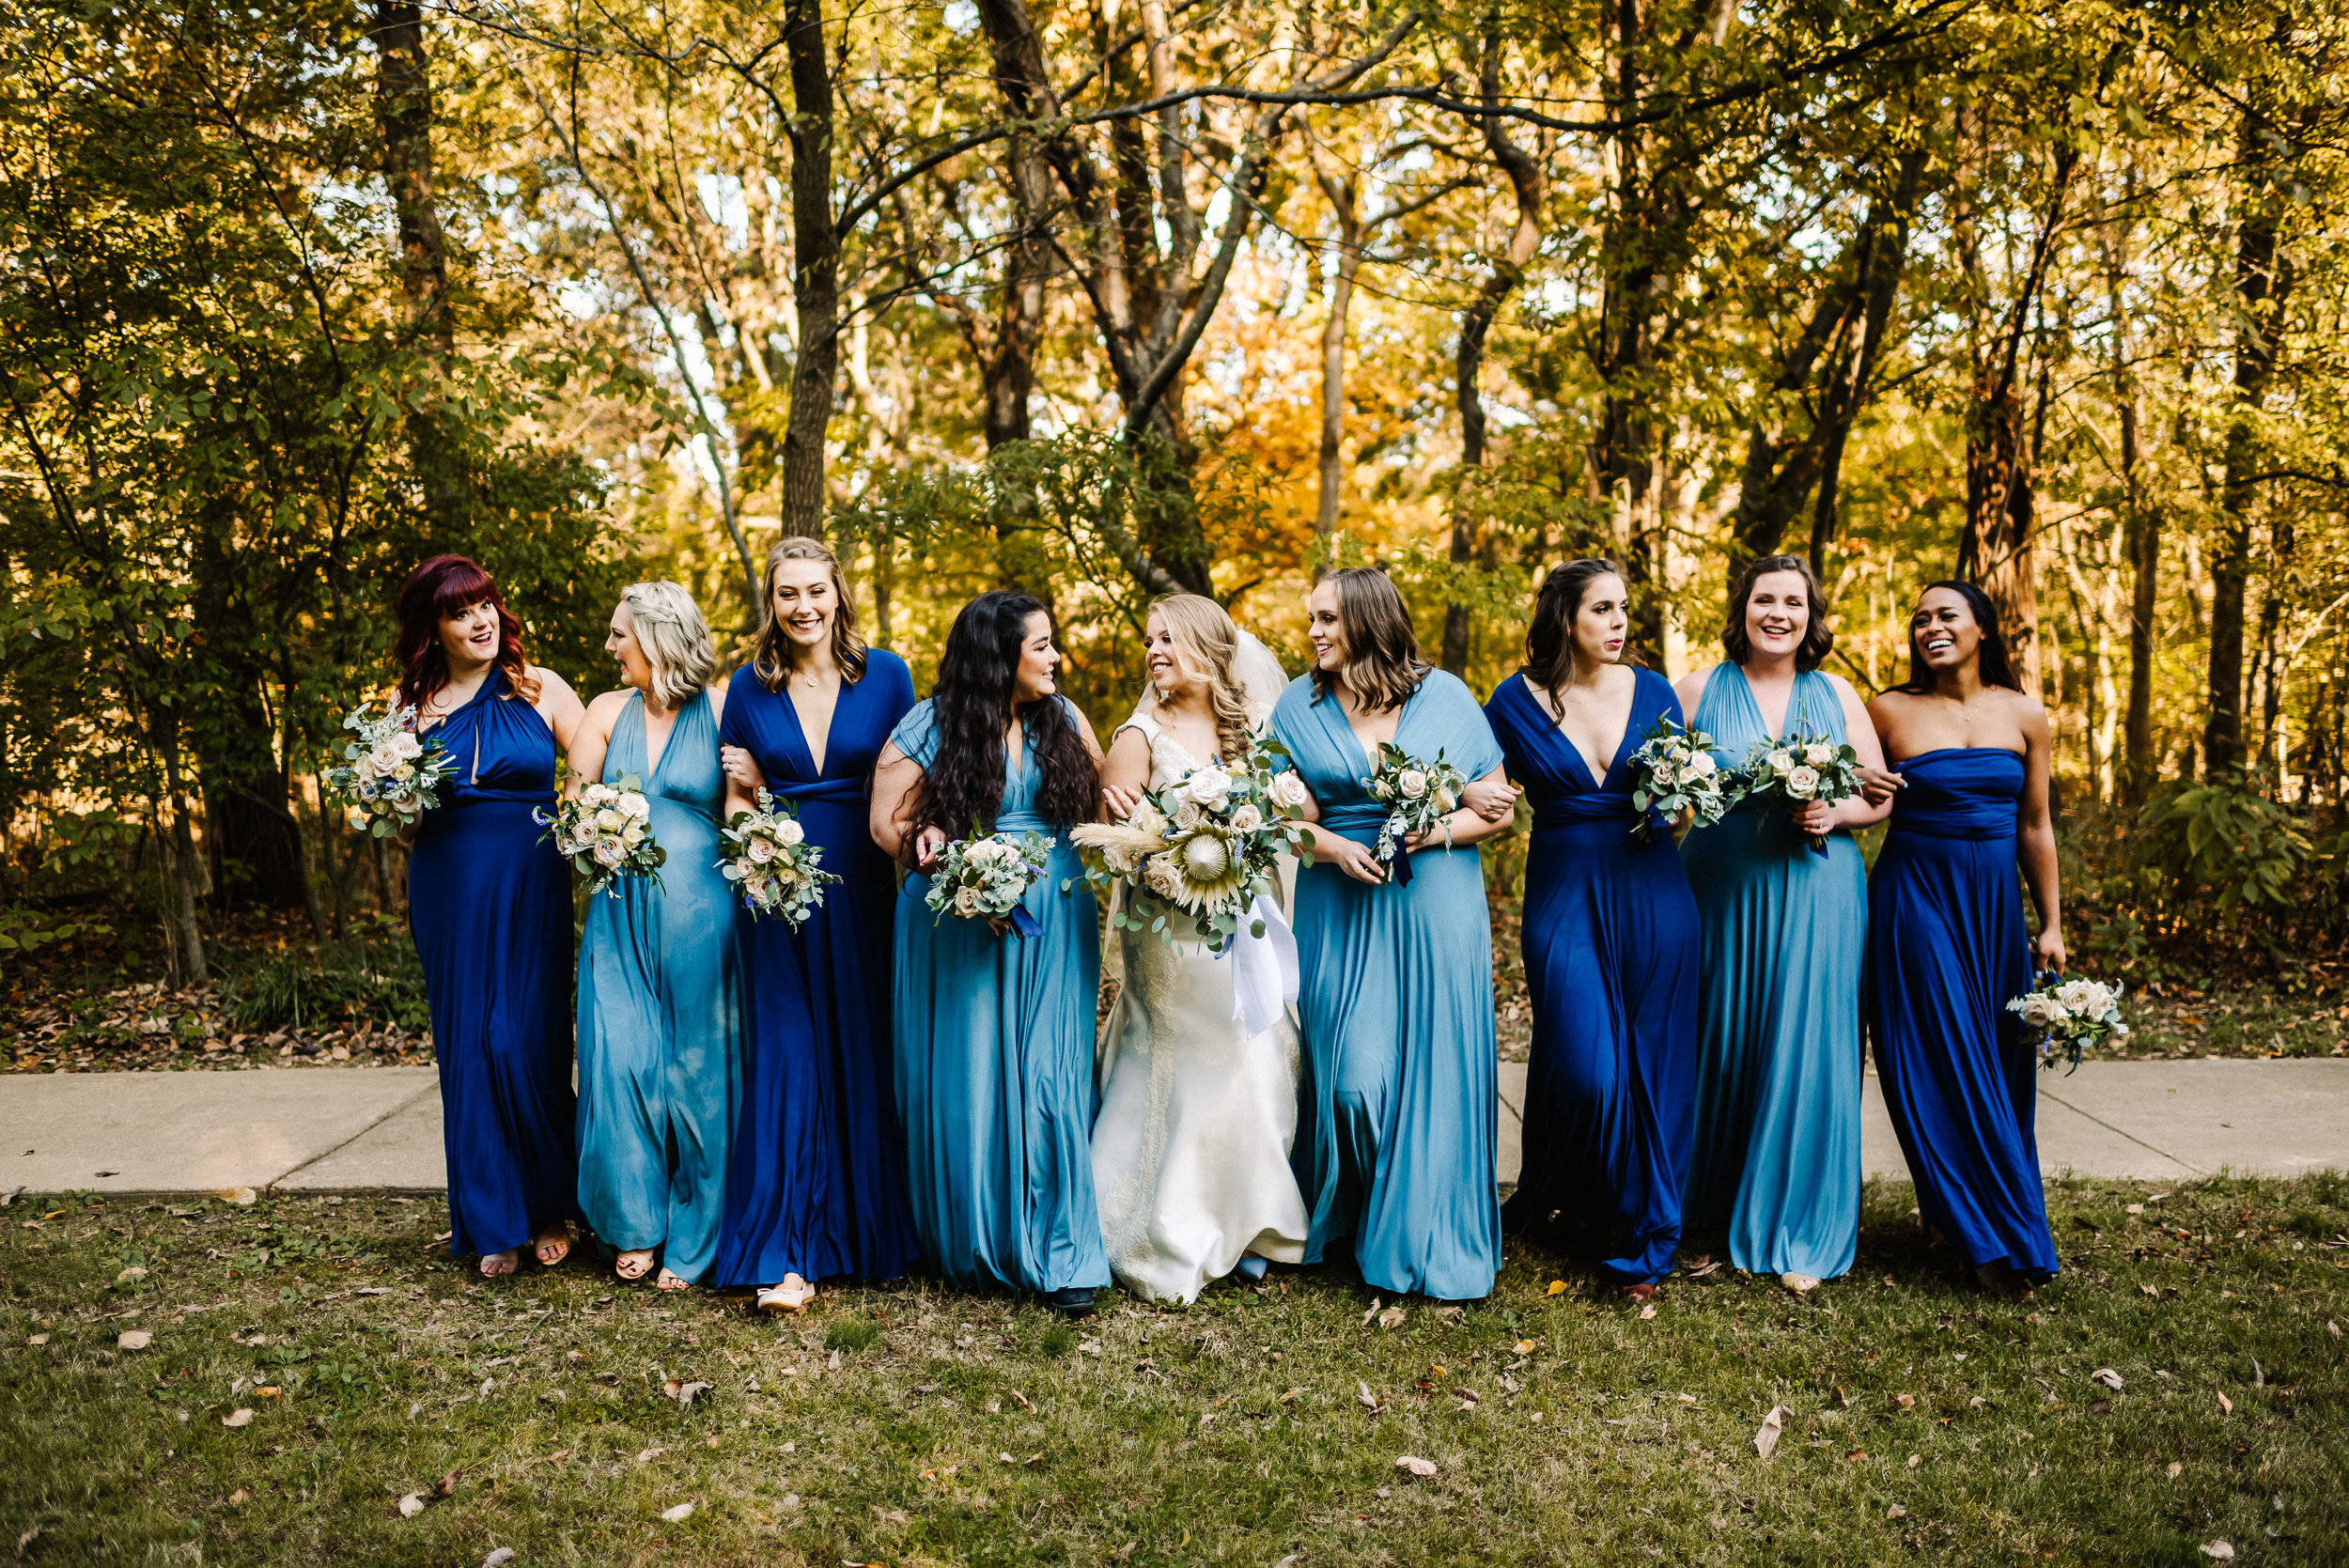 Lichterman Nature Center Wedding_La Croix Wedding_Ashley Benham Photography-351.jpg